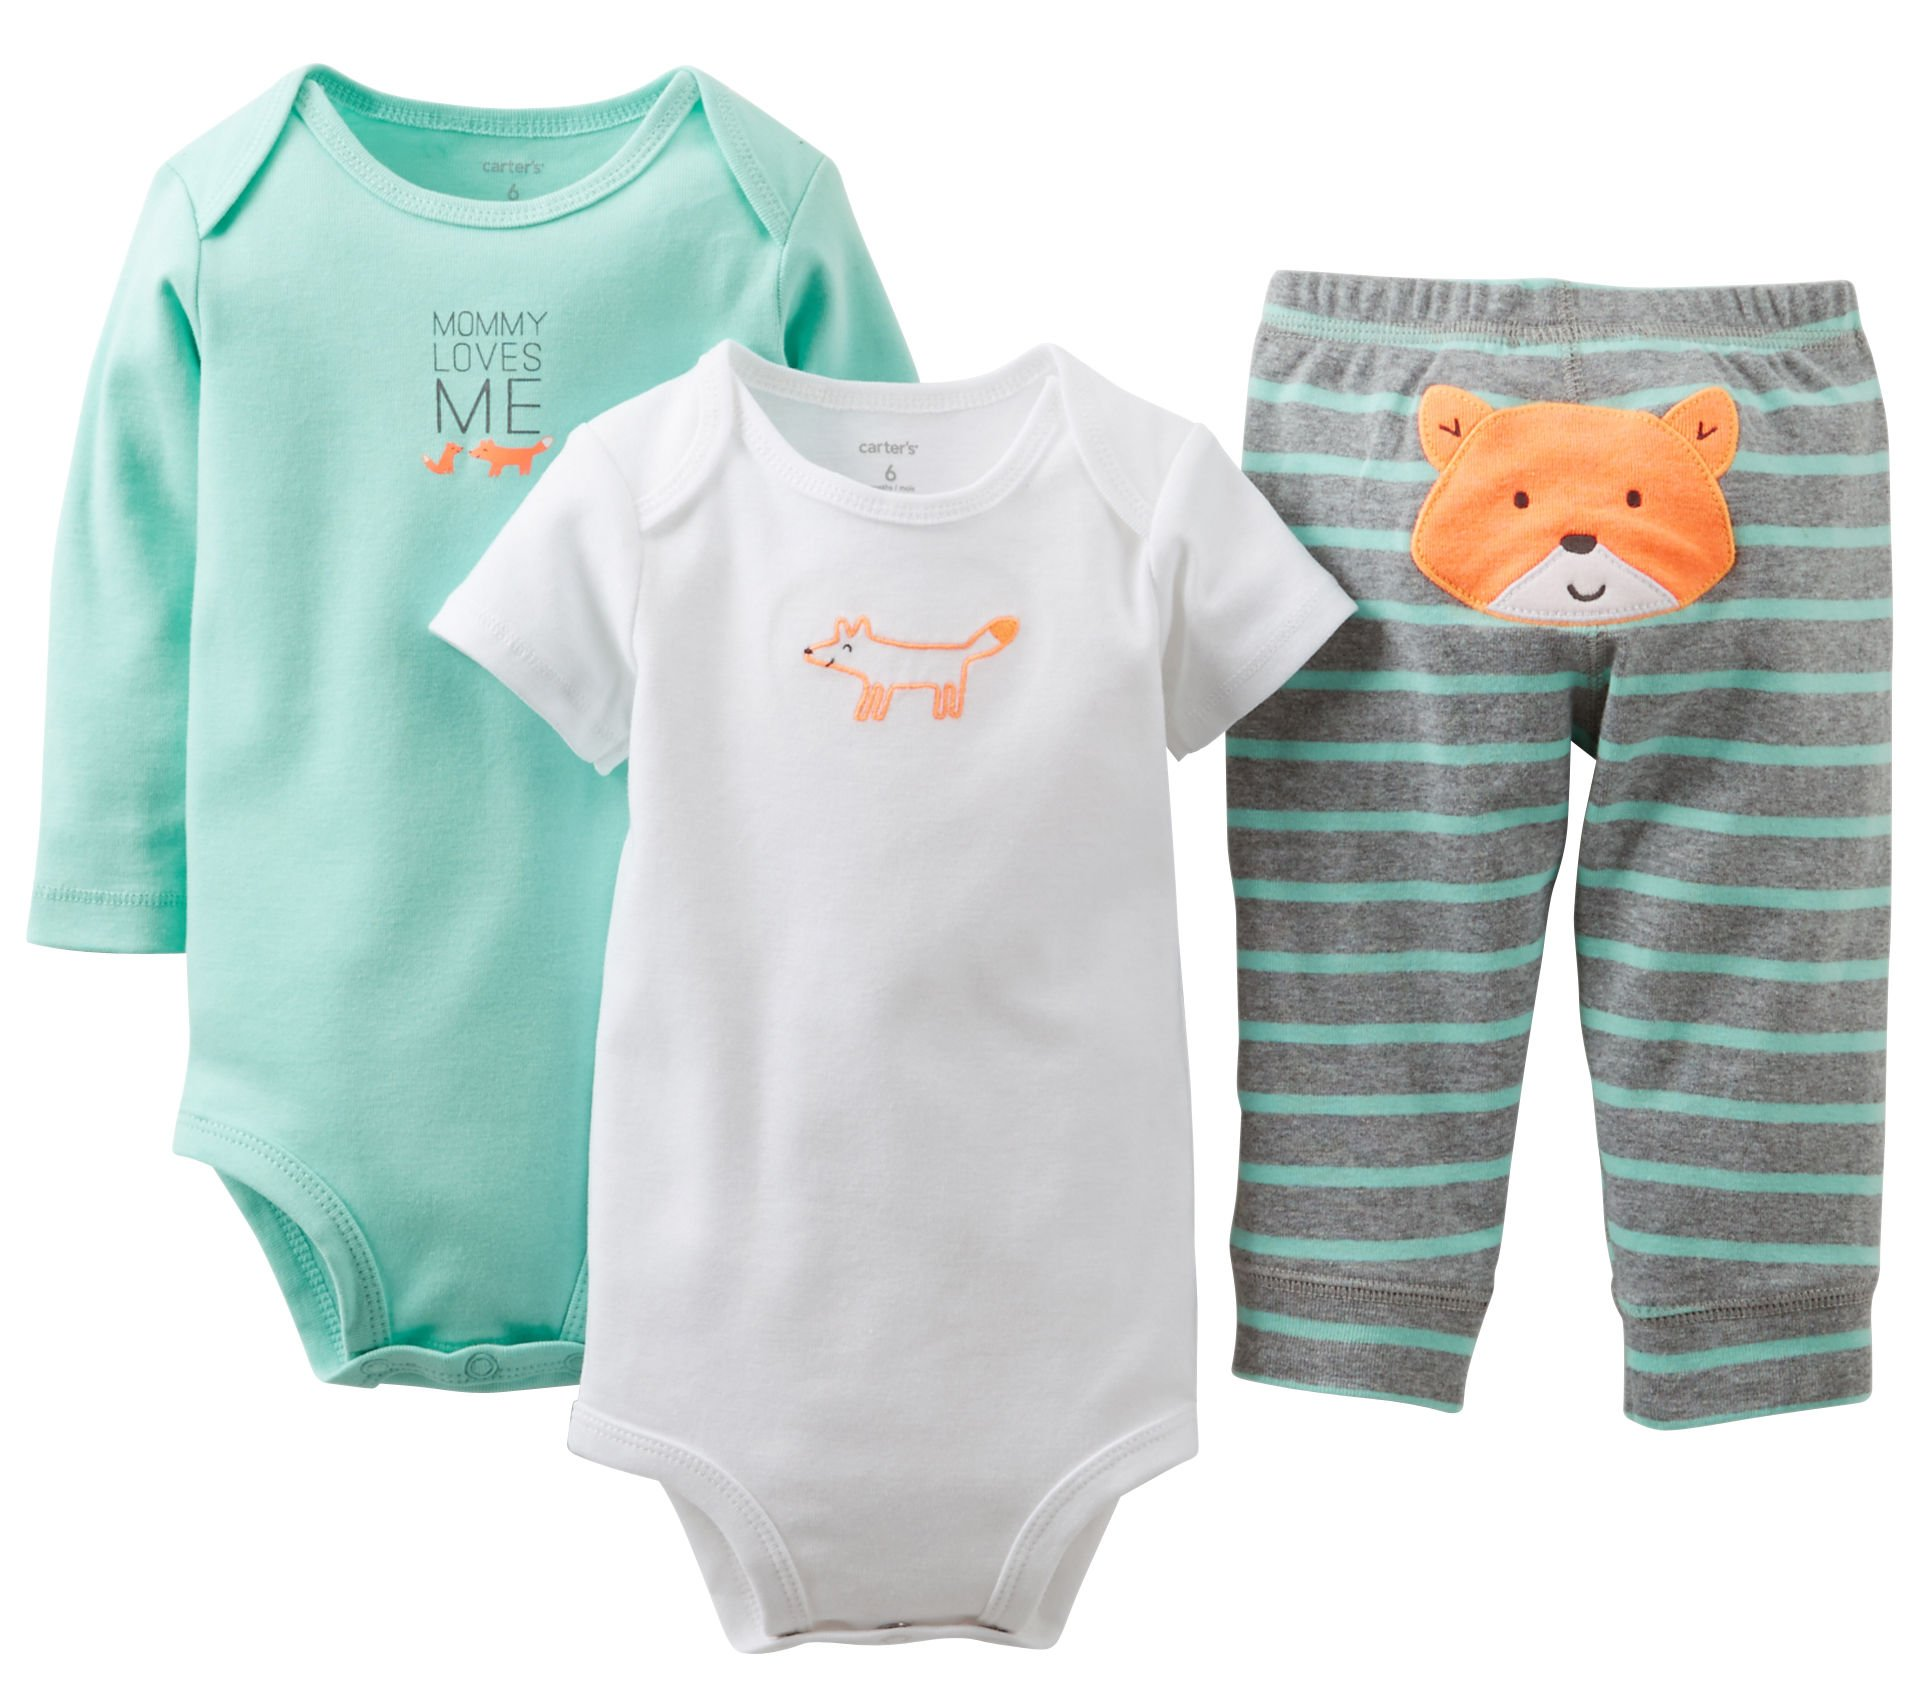 Carter's Baby Boys' 3 Piece ''Take me Away'' Set (Baby) - Mommy Loves Me - Mint - 6 Months by Carter's (Image #1)